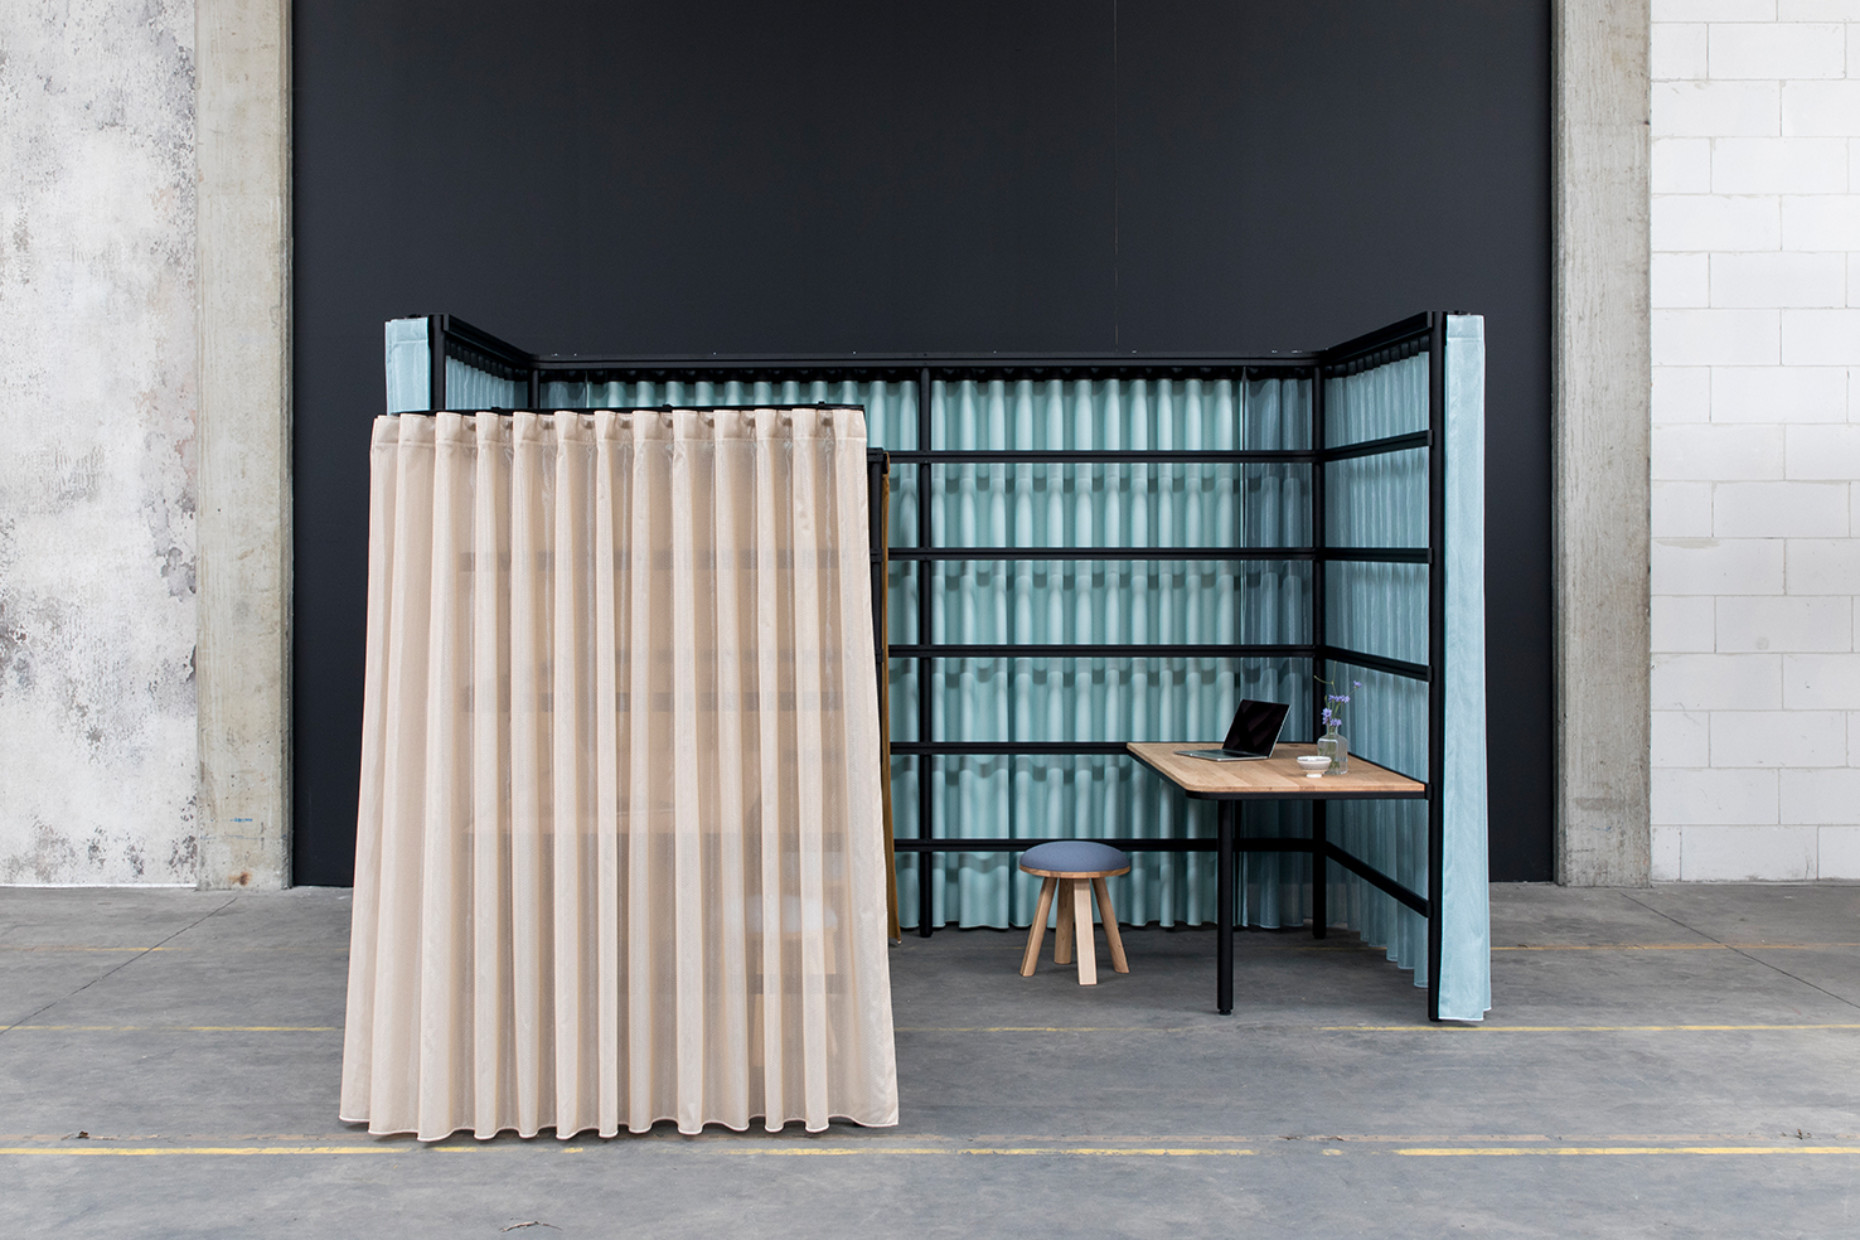 Opinions are divided on the BuzziBracks by Alain Gilles for BuzziSpace: extraordinary room divider or prison cell with fabric hangings? Decide for yourself.